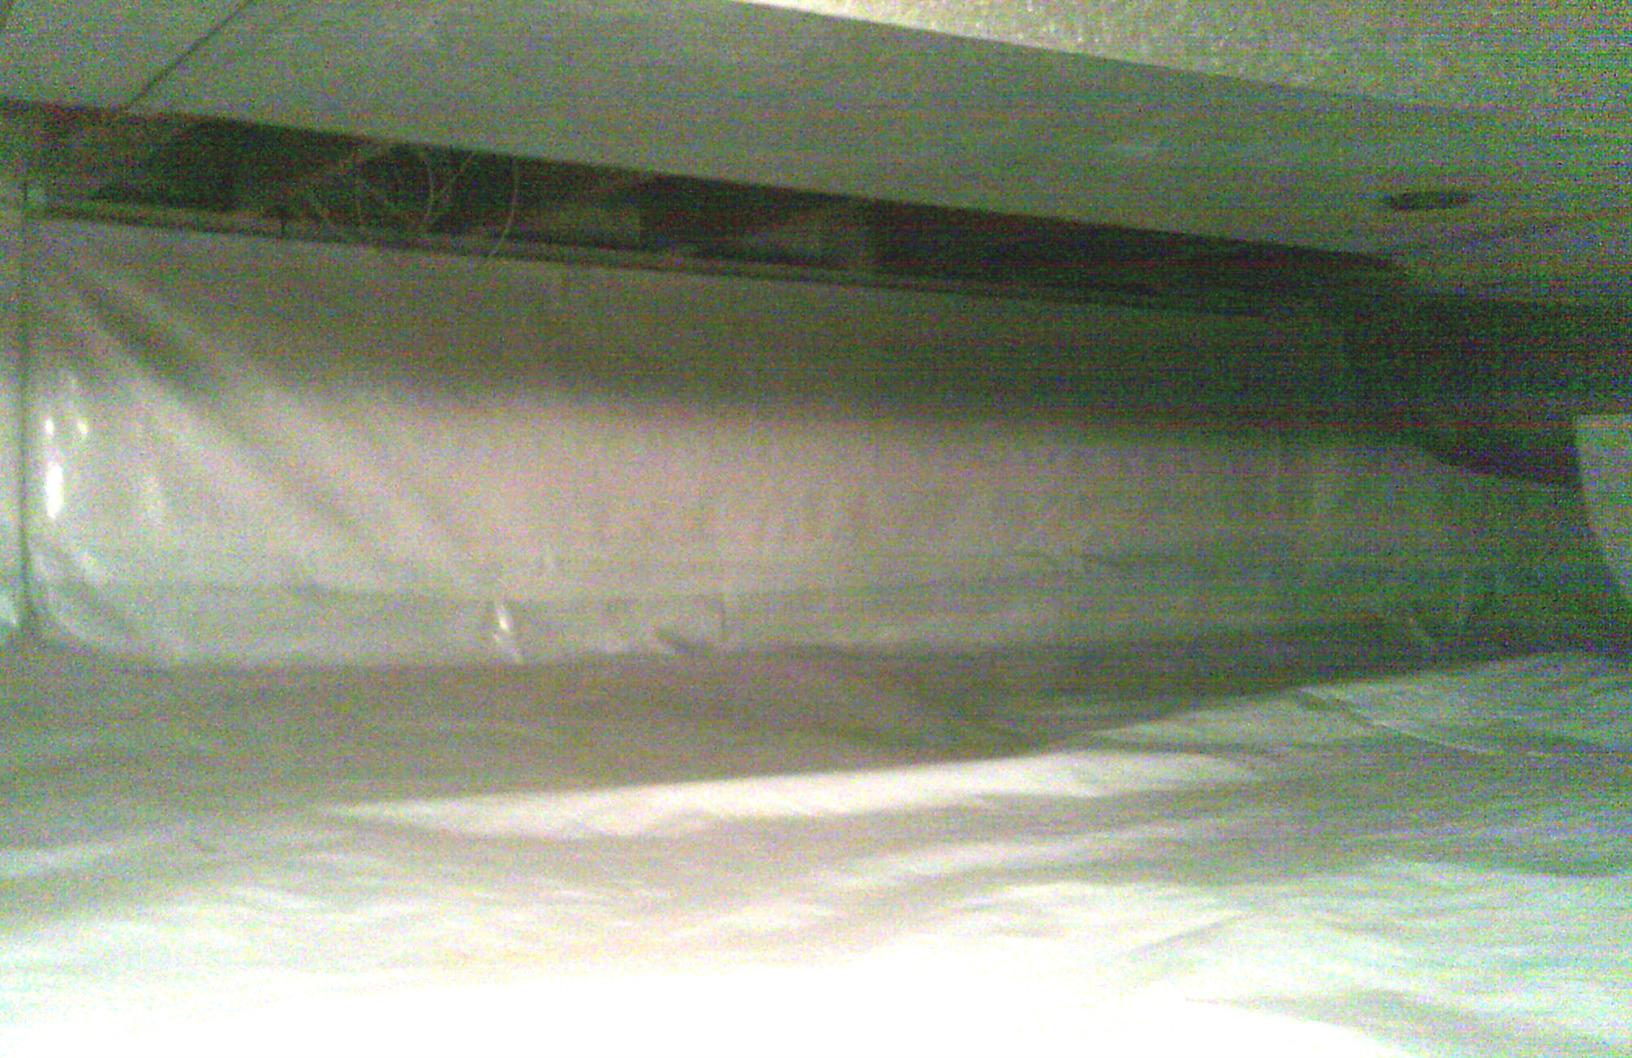 CleanSpace liner is 20 mil thick and has an antimicrobial additive that resists mold growth making it ideal in damp spaces!